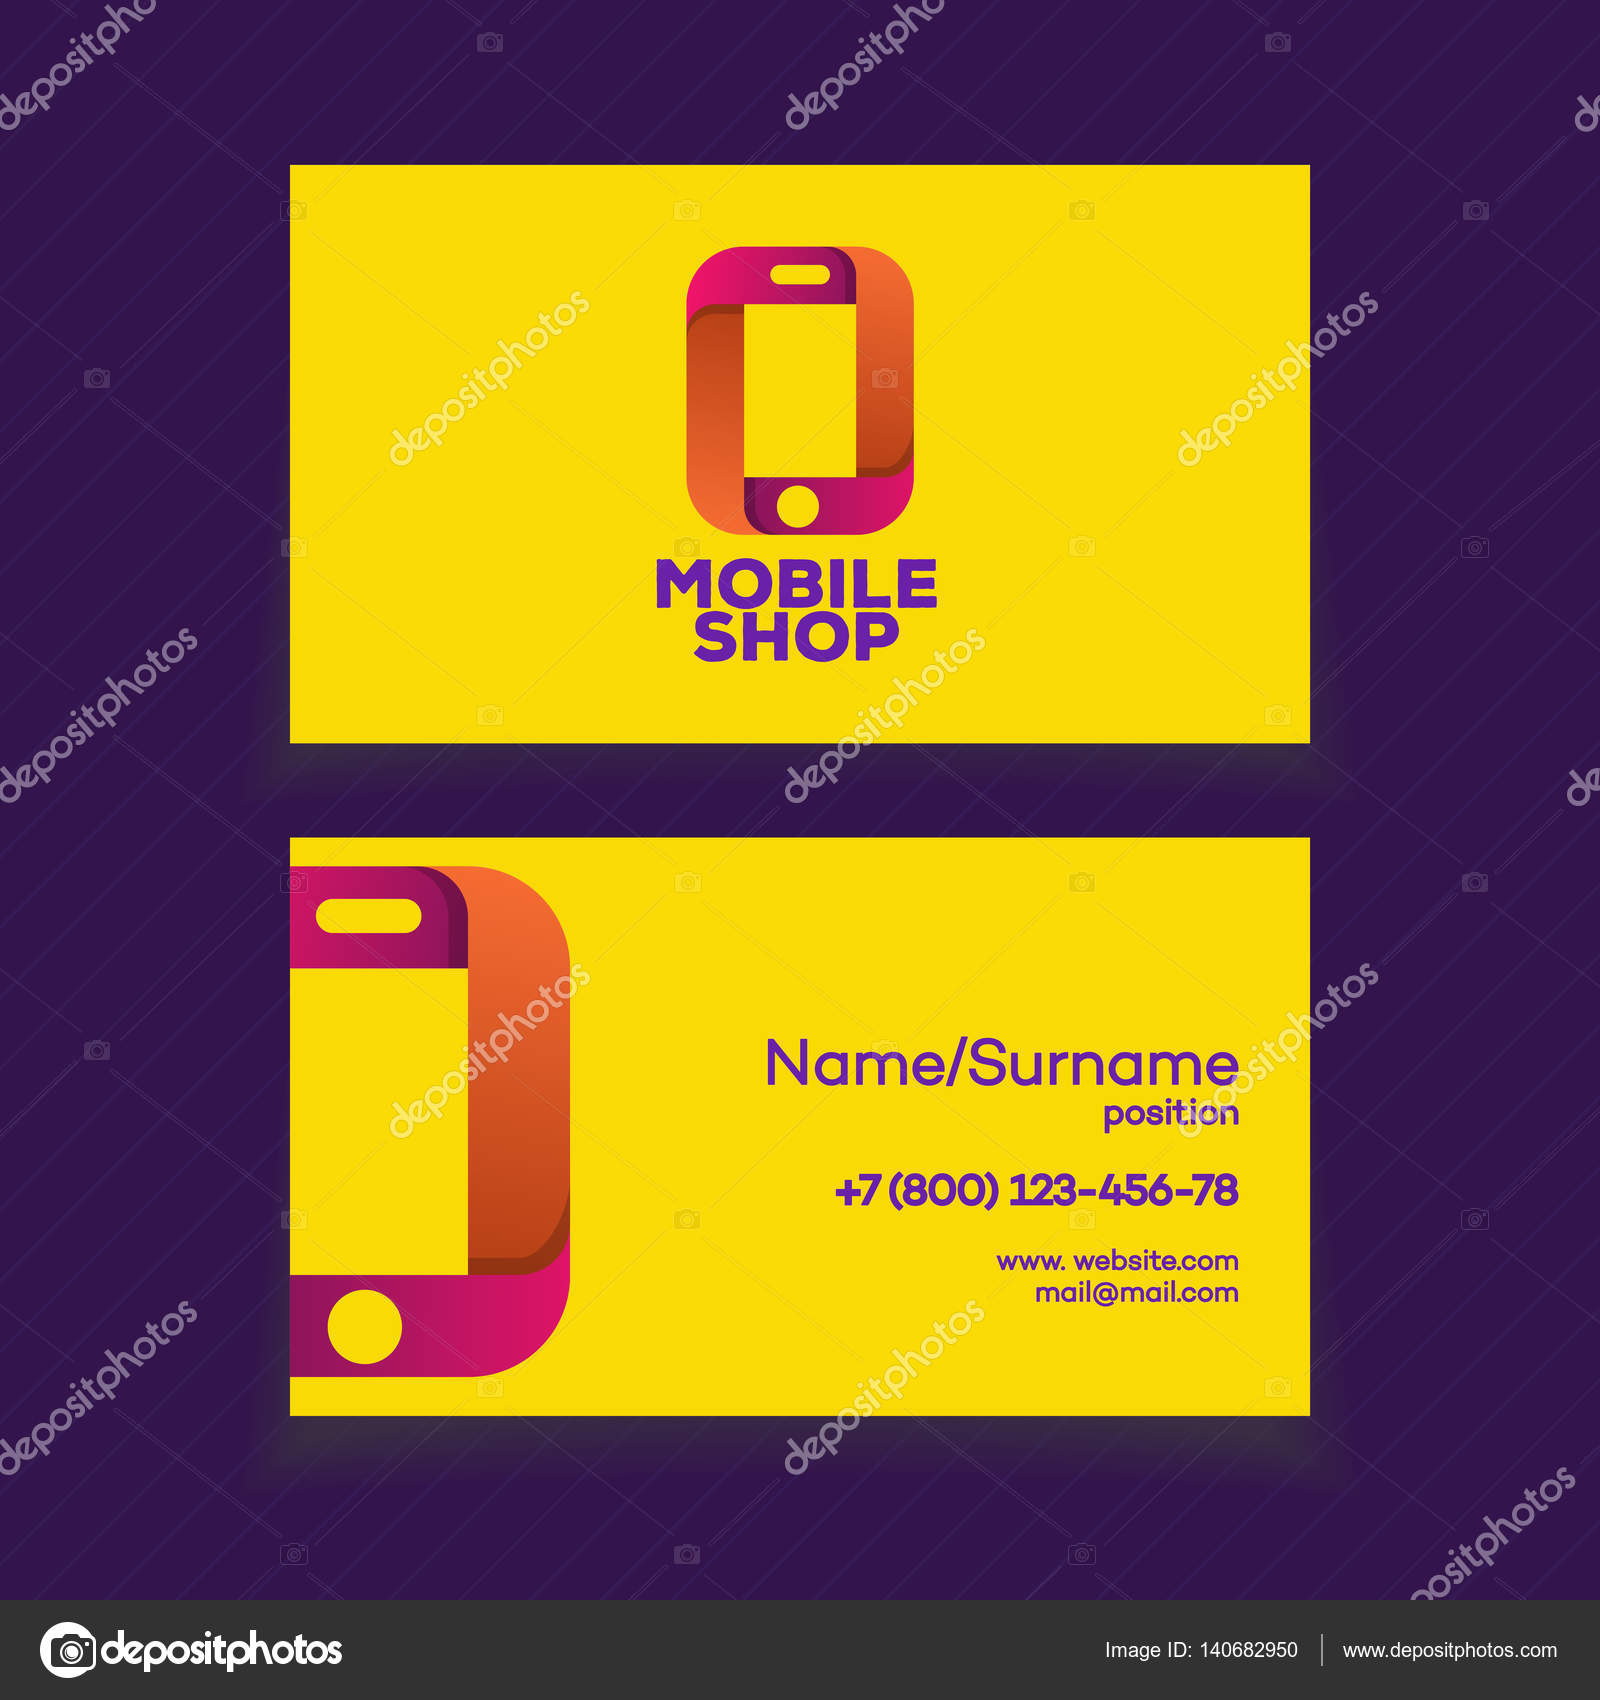 Mobile shop business card design template — Stock Vector © VI6277 ...